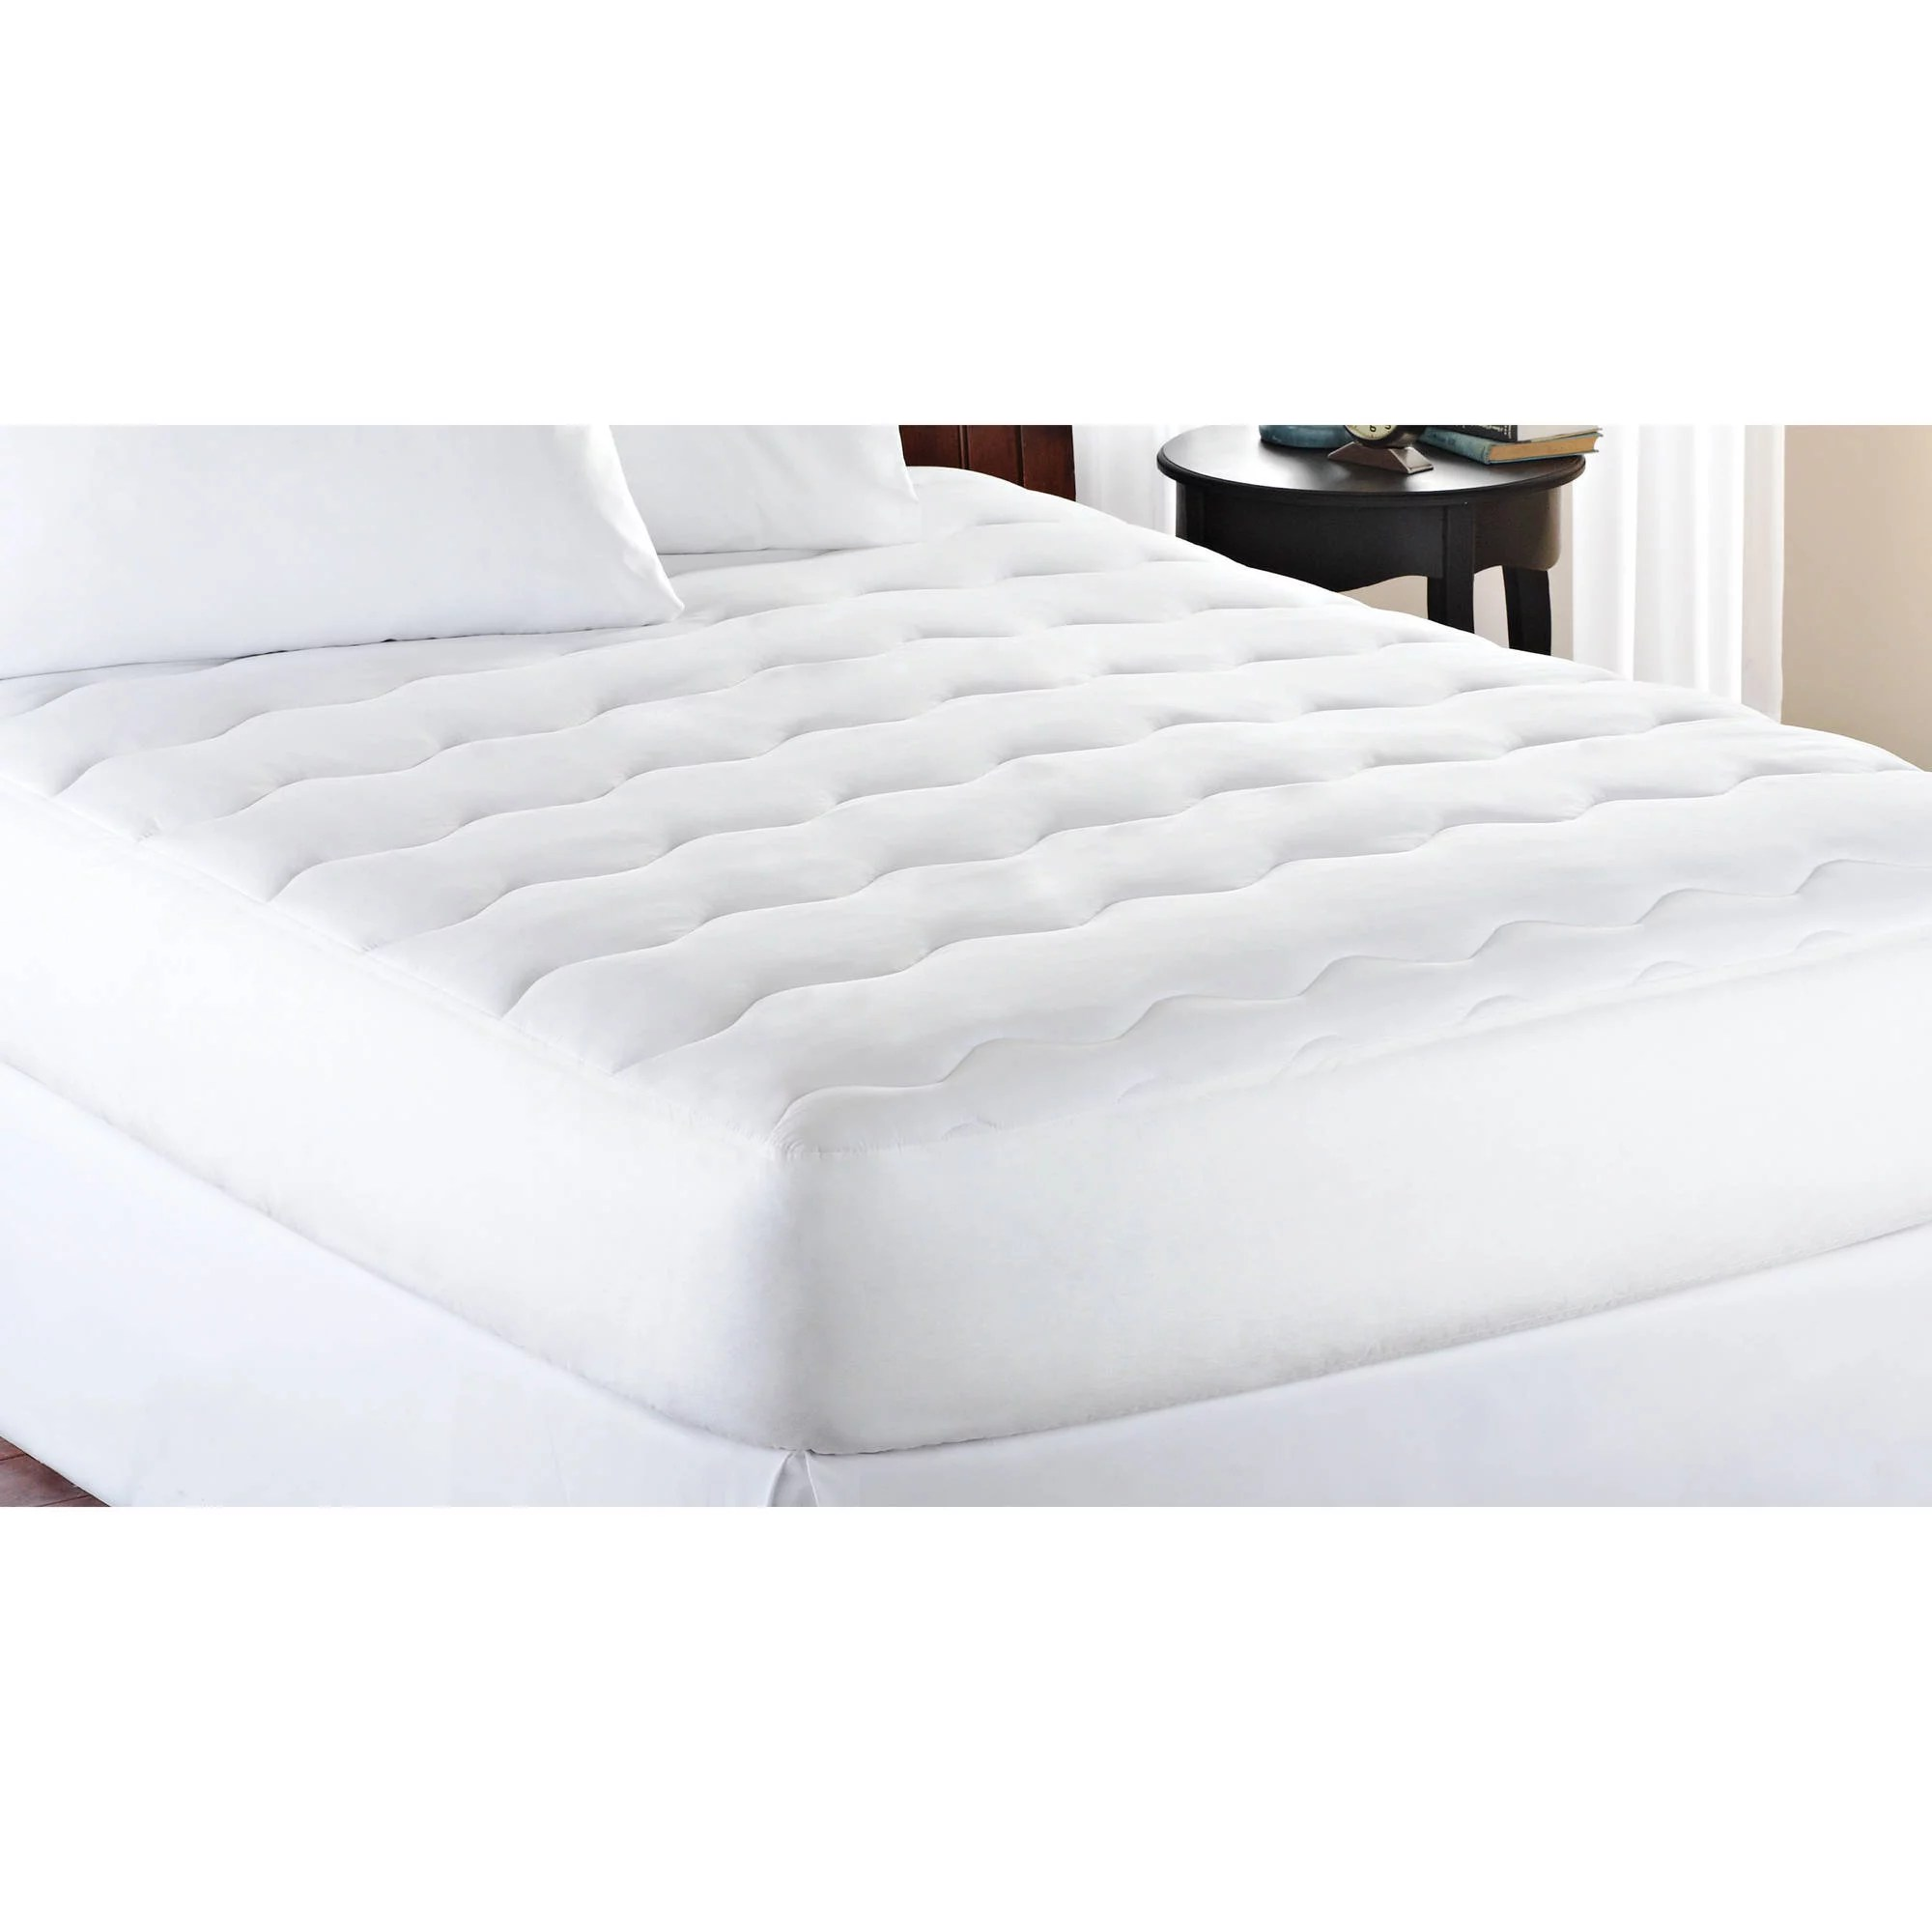 mainstays extra thick mattress pad 10 oz fill in multiple sizes walmart com